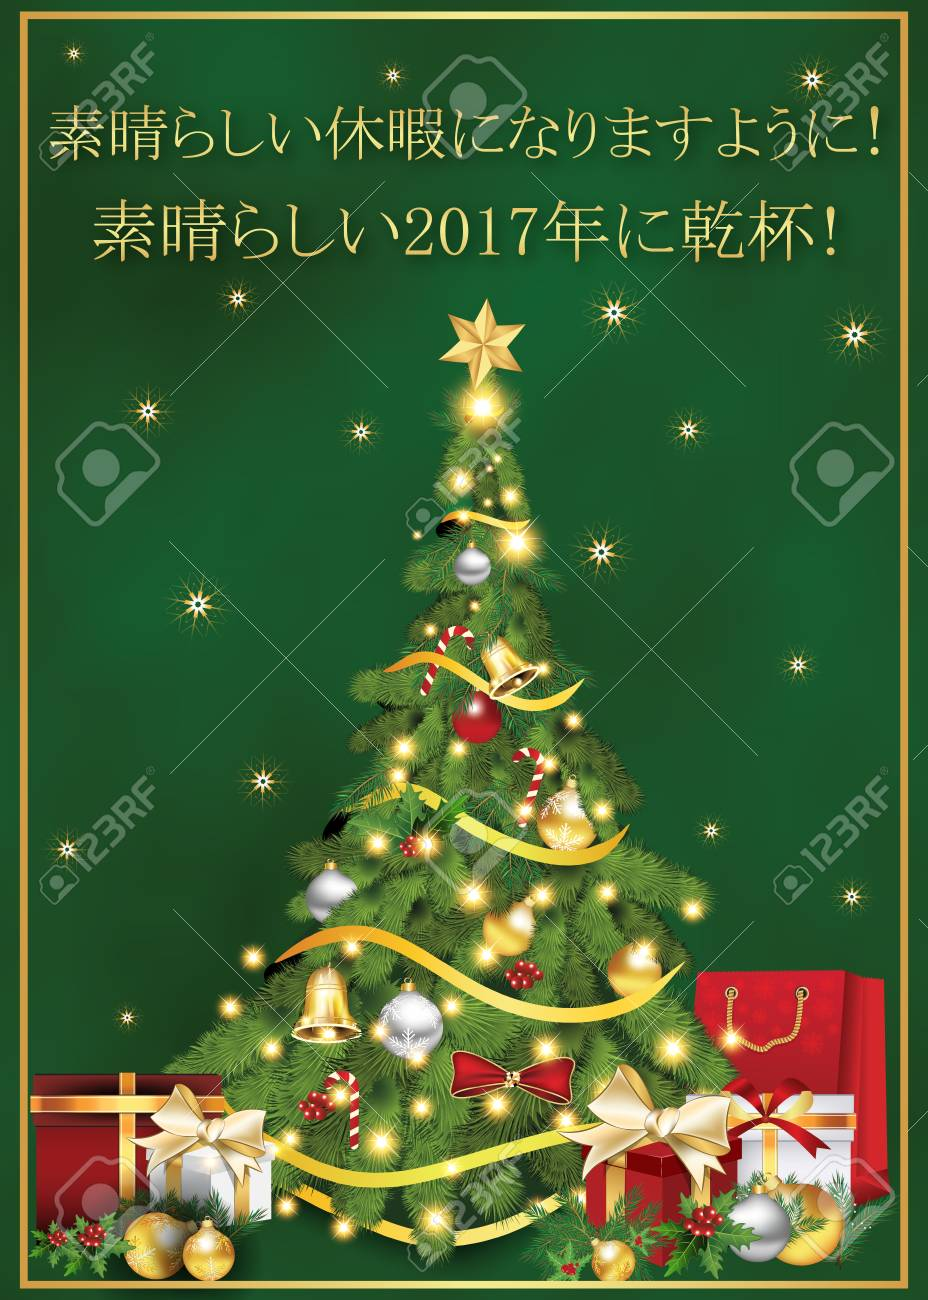 Japanese Greeting Card. We Wish You Merry Christmas And Happy ...